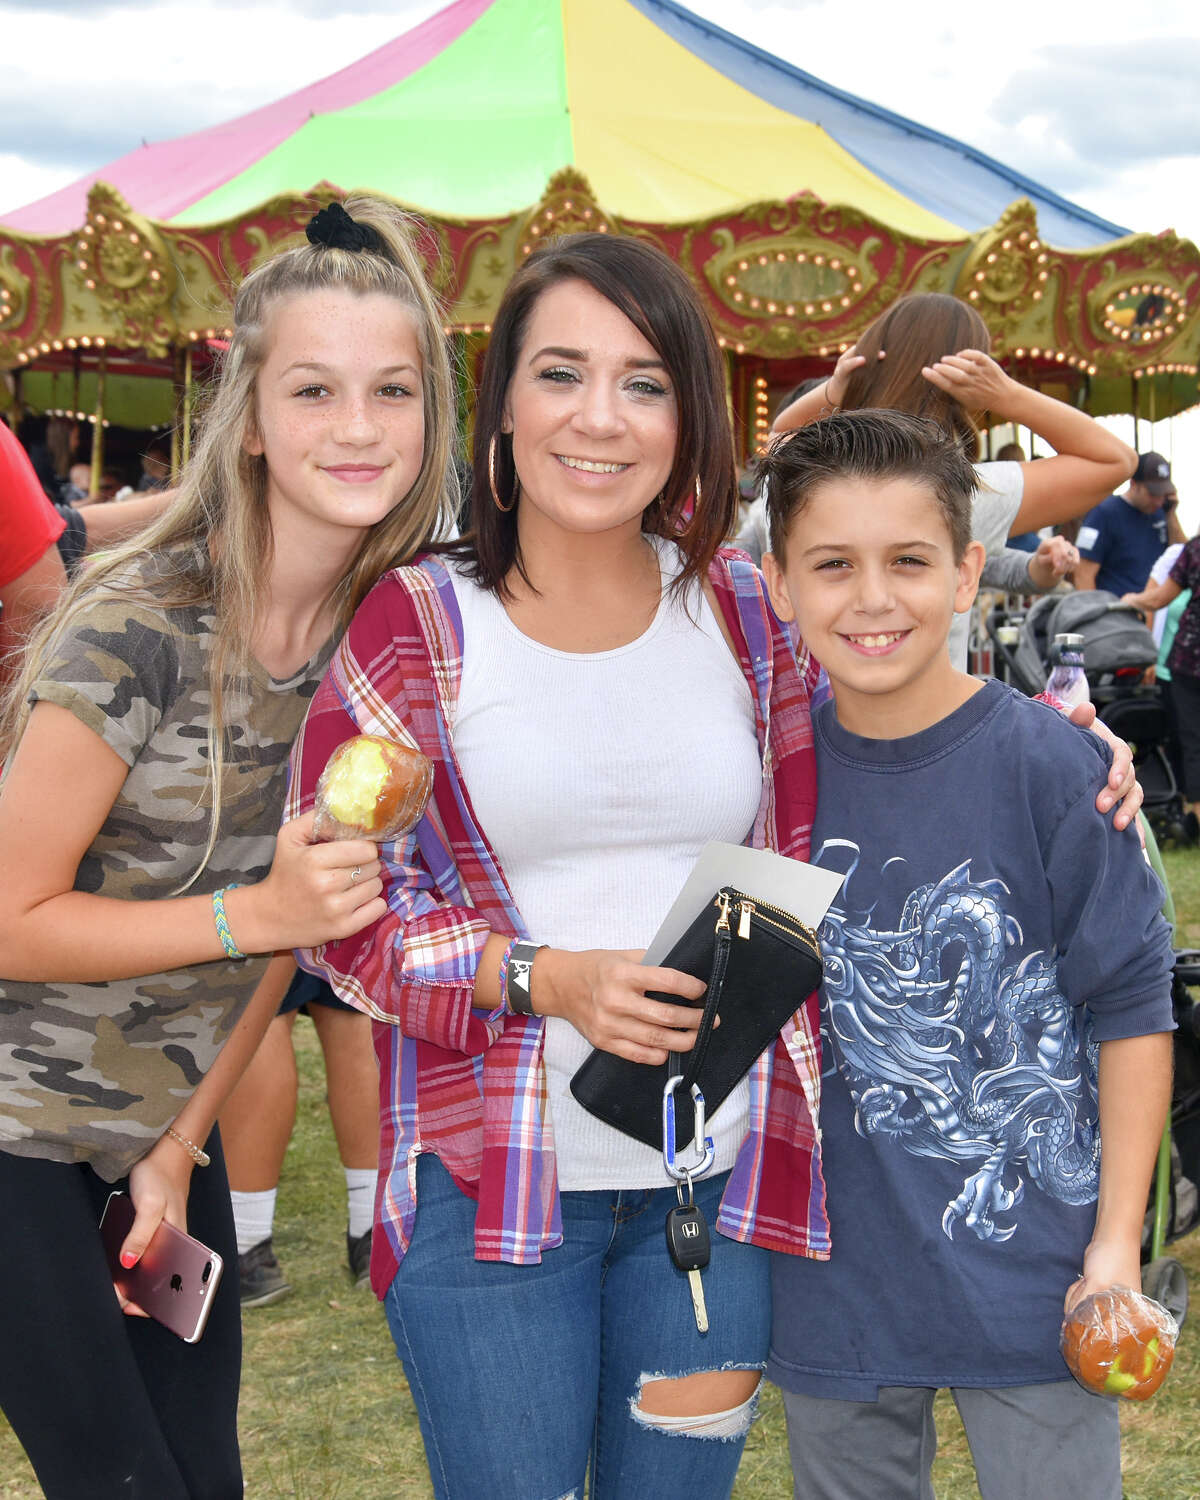 The Annual Goshen Fair is a traditional agricultural fair complete with truck pulls, fair food, a lumberjack competition, music and more.. Were you SEEN at the fair on September 1, 2019?